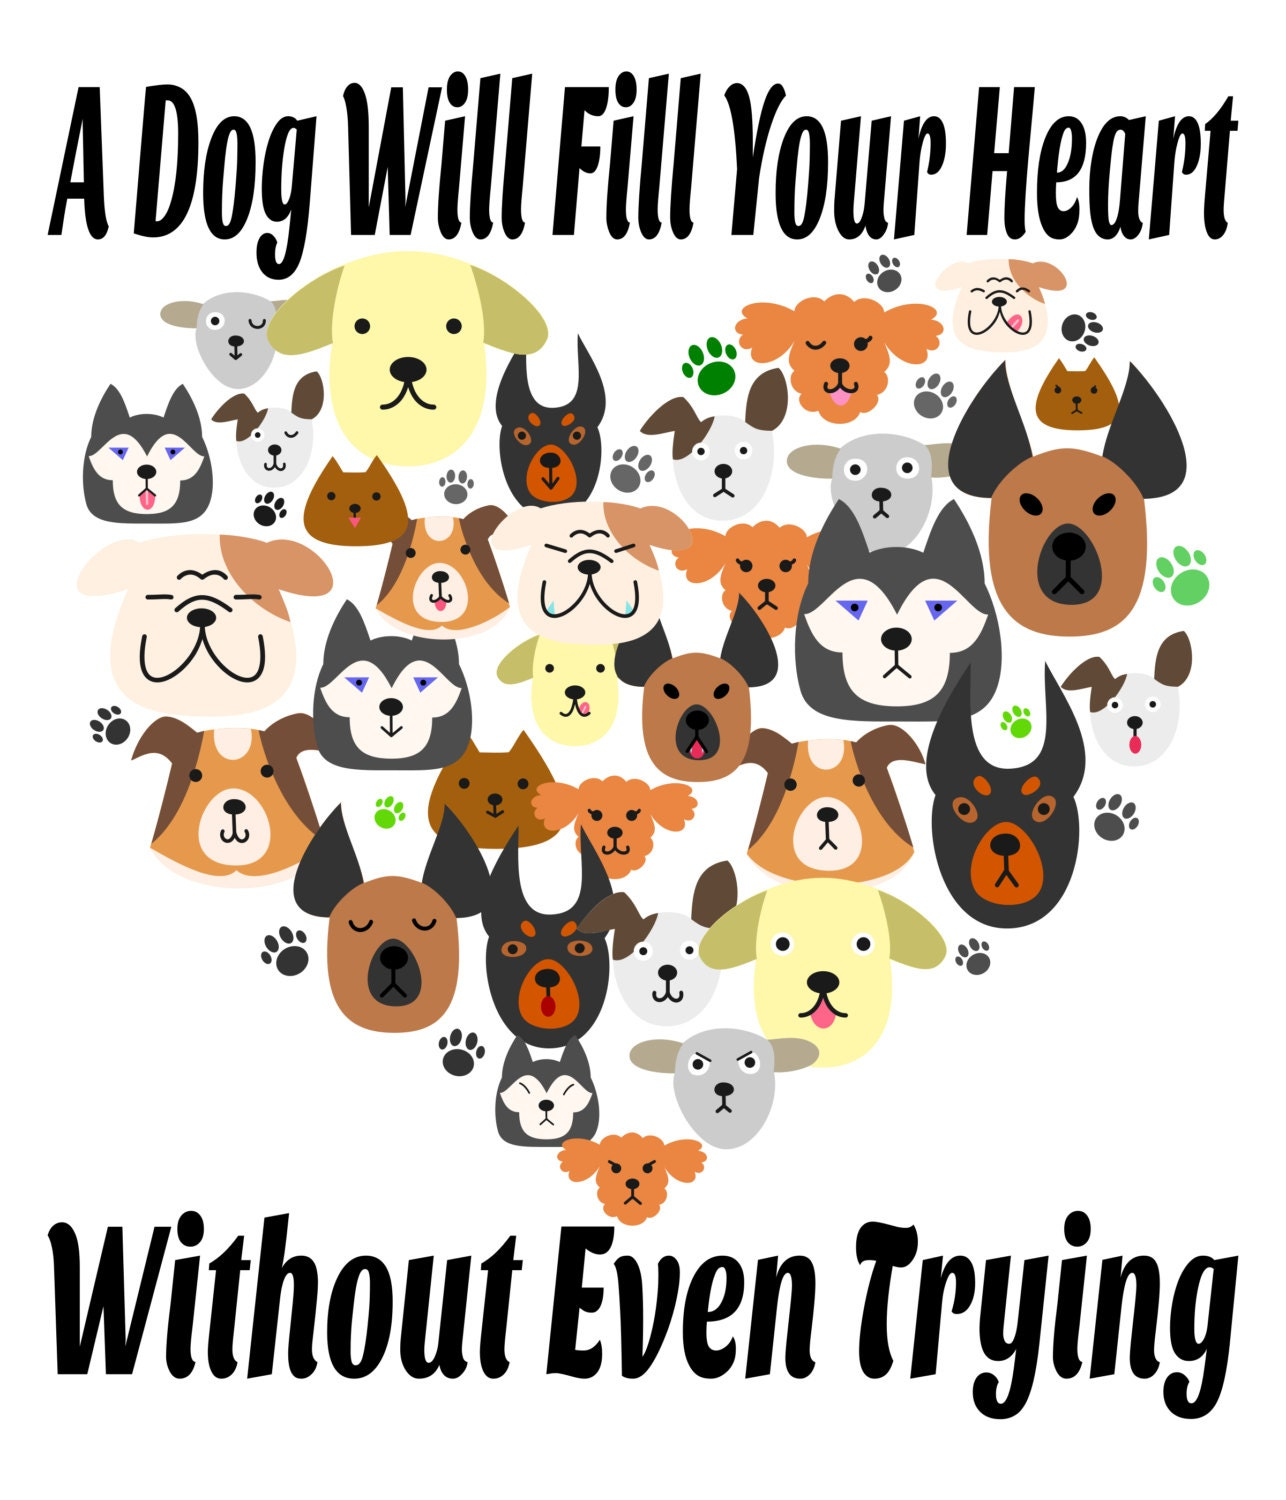 Dog Mug - A Dog Will Fill Your Heart Without Even Trying - My Dog Mug